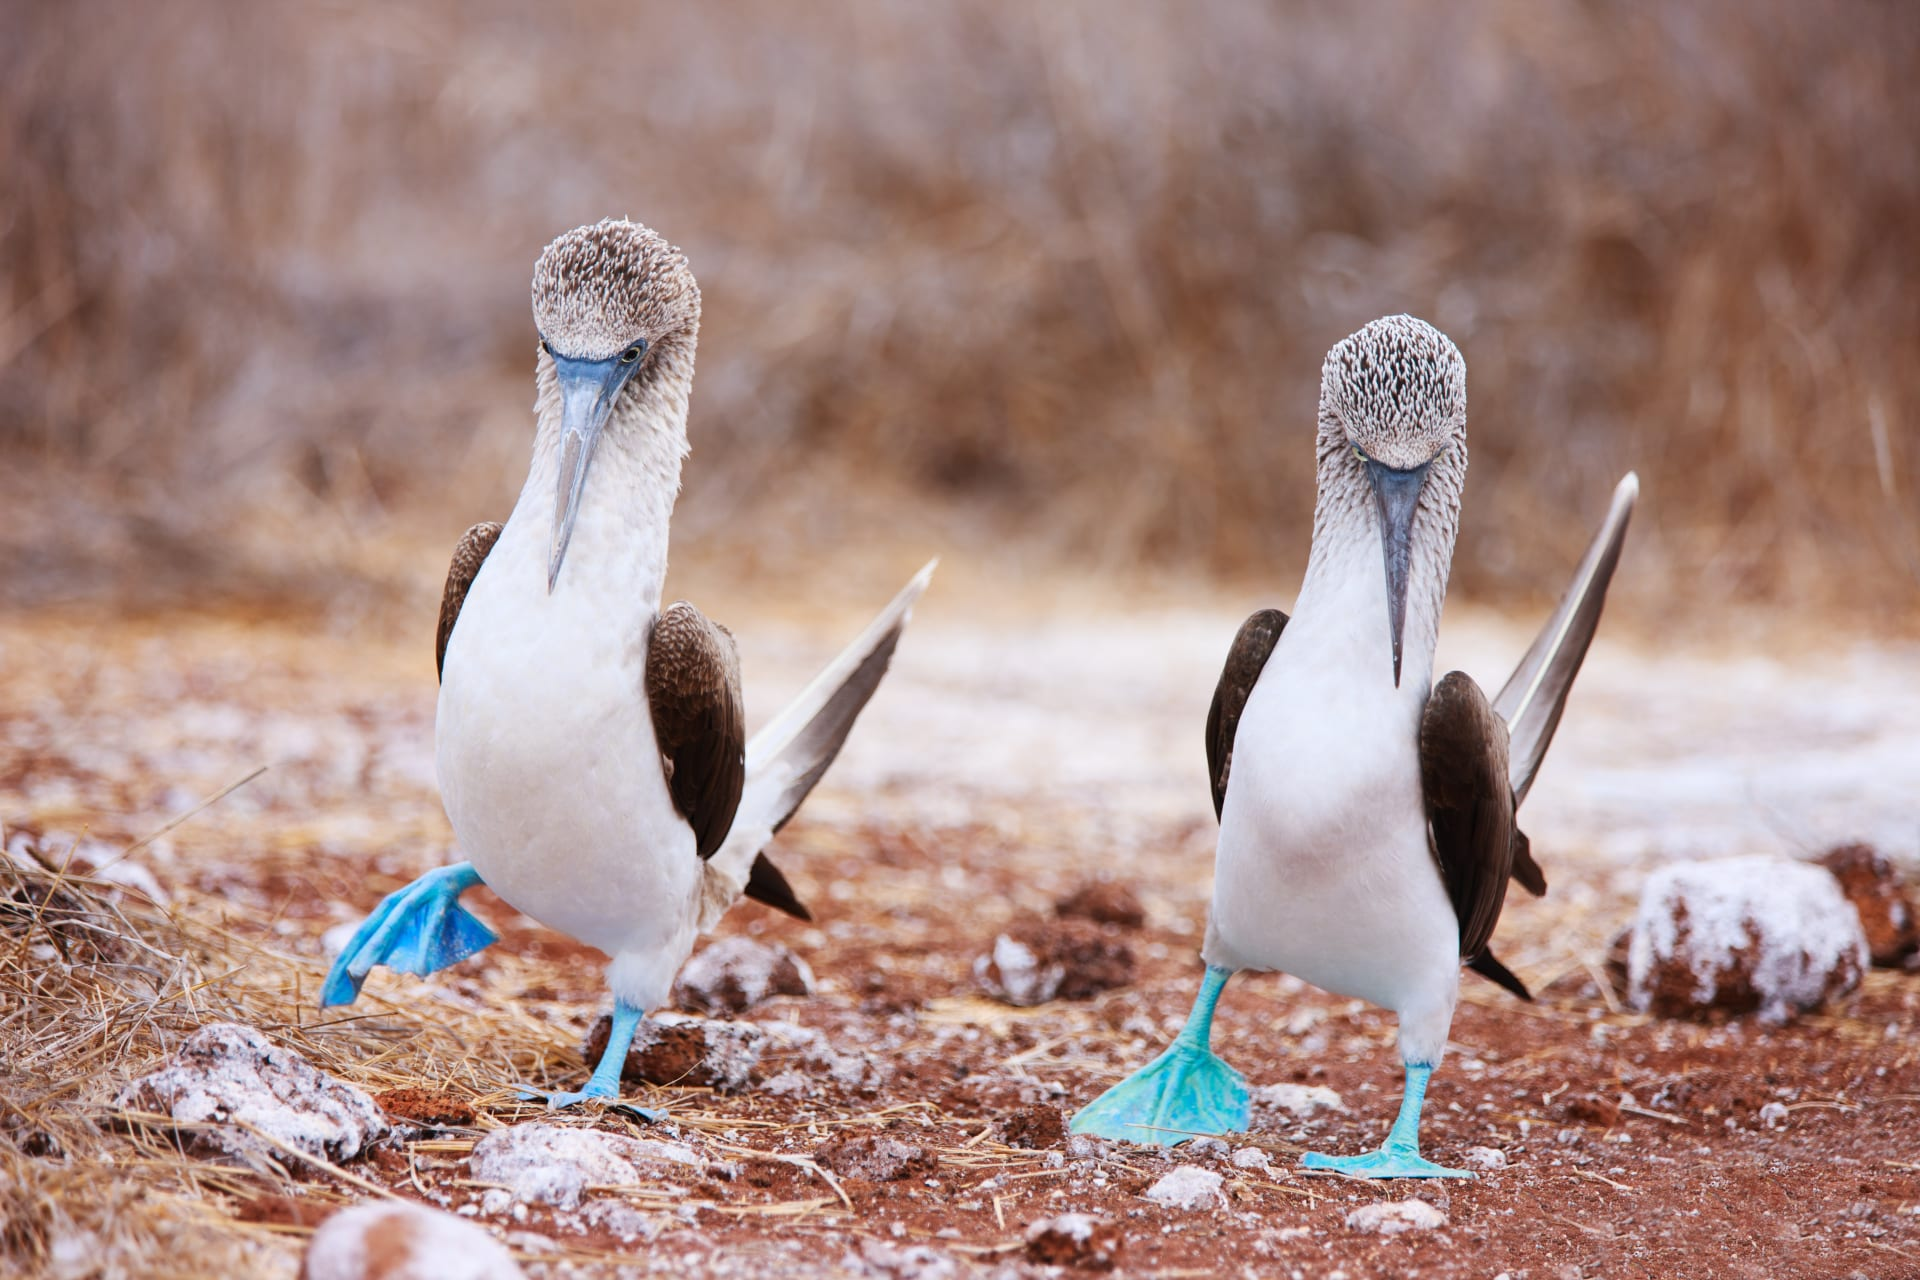 Puerto Lopez - Village of fishermen and blue-footed boobies